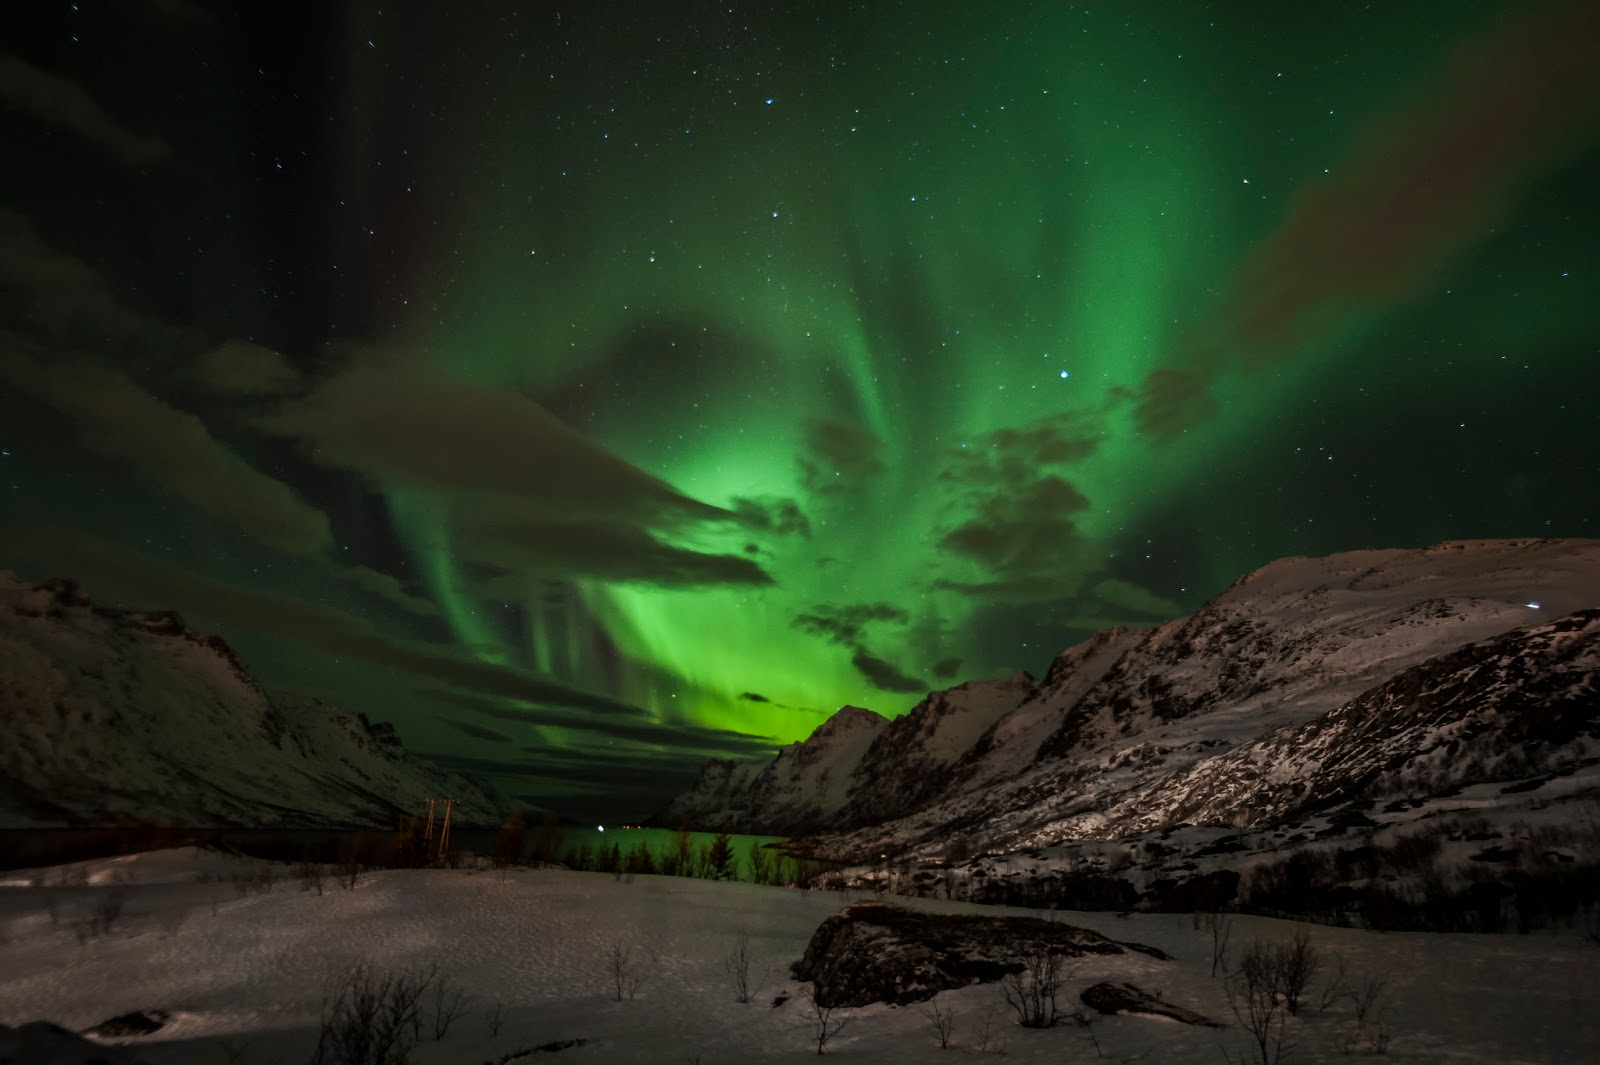 The dazzling display of the Northern Lights over Tromsø, Norway. Photo: Mark Robinson.